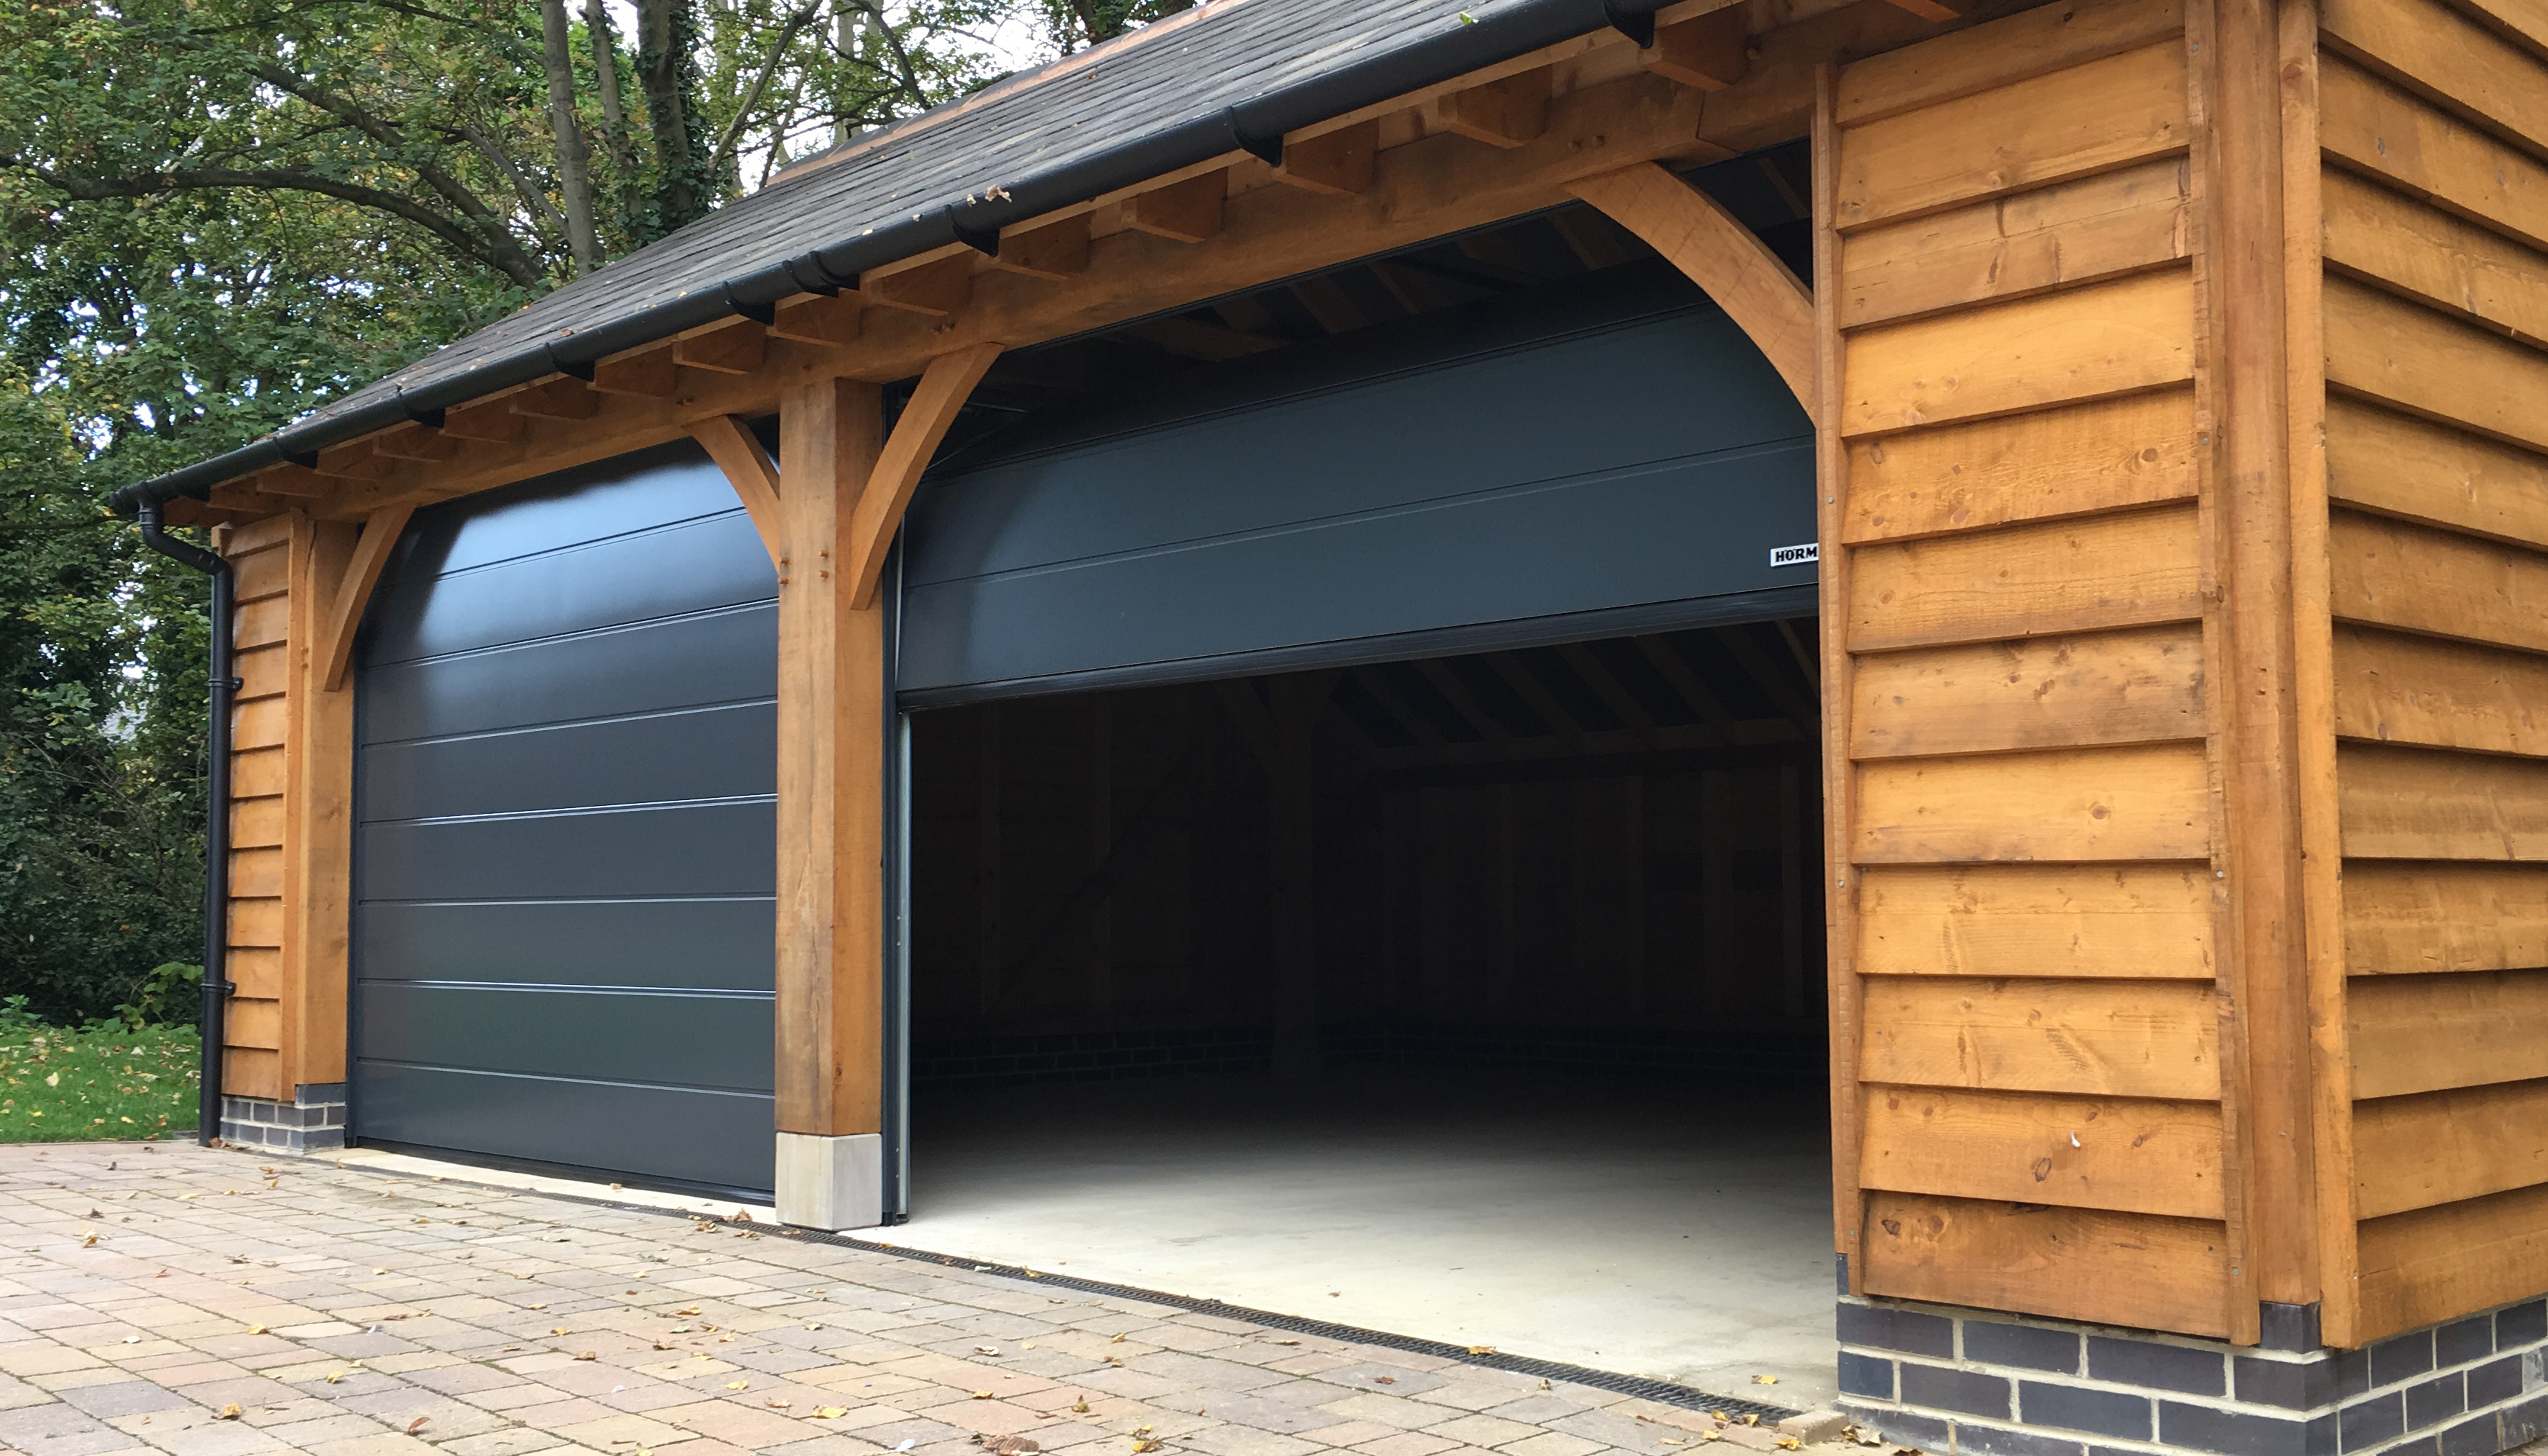 Sectional Garage Doors Overhead Garage Doors Insulated Security